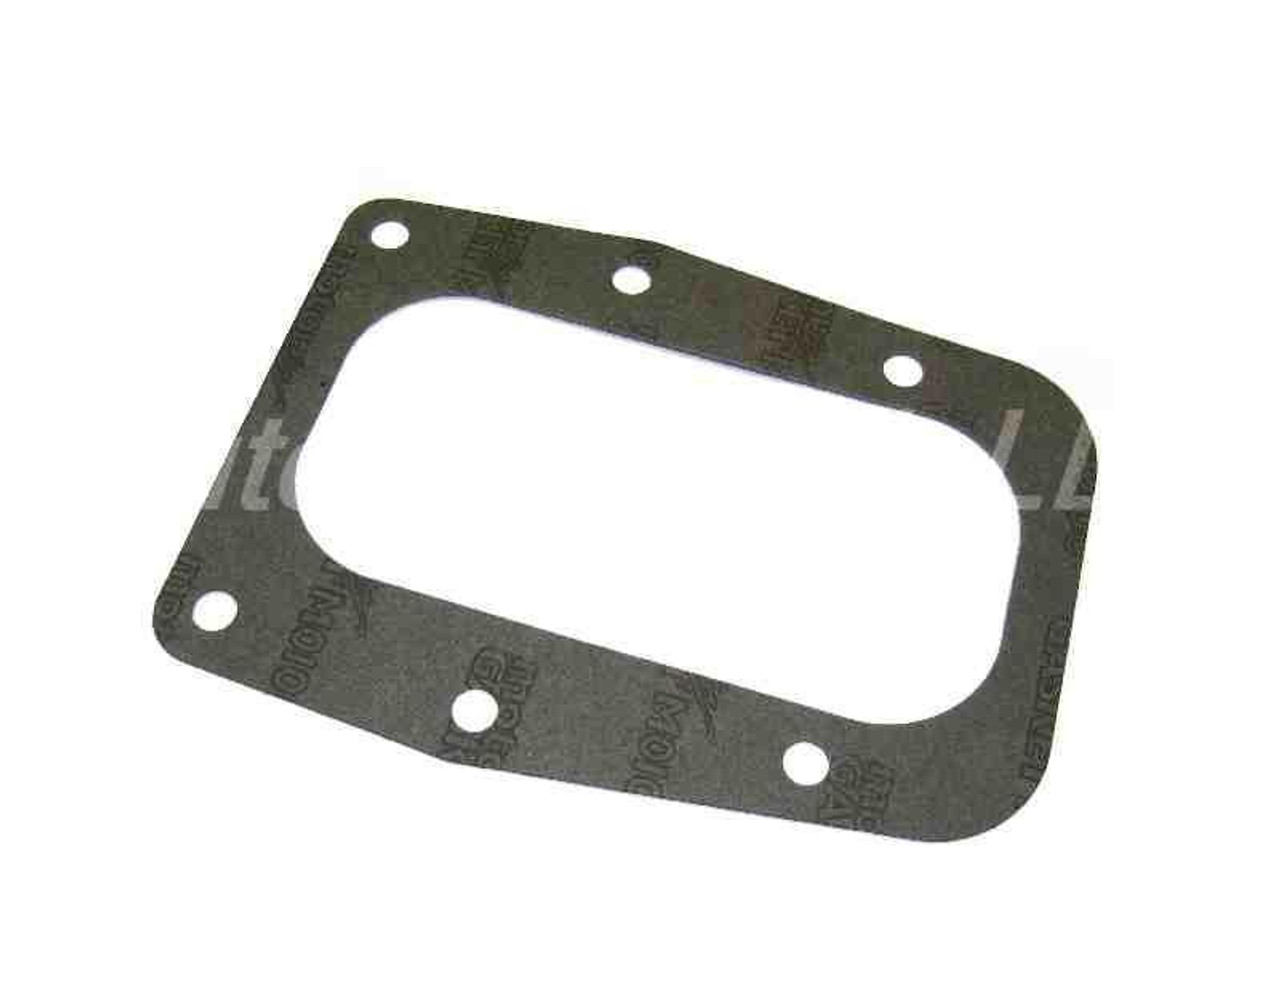 Rear Coolant Galley Cover Gasket - 1979-85